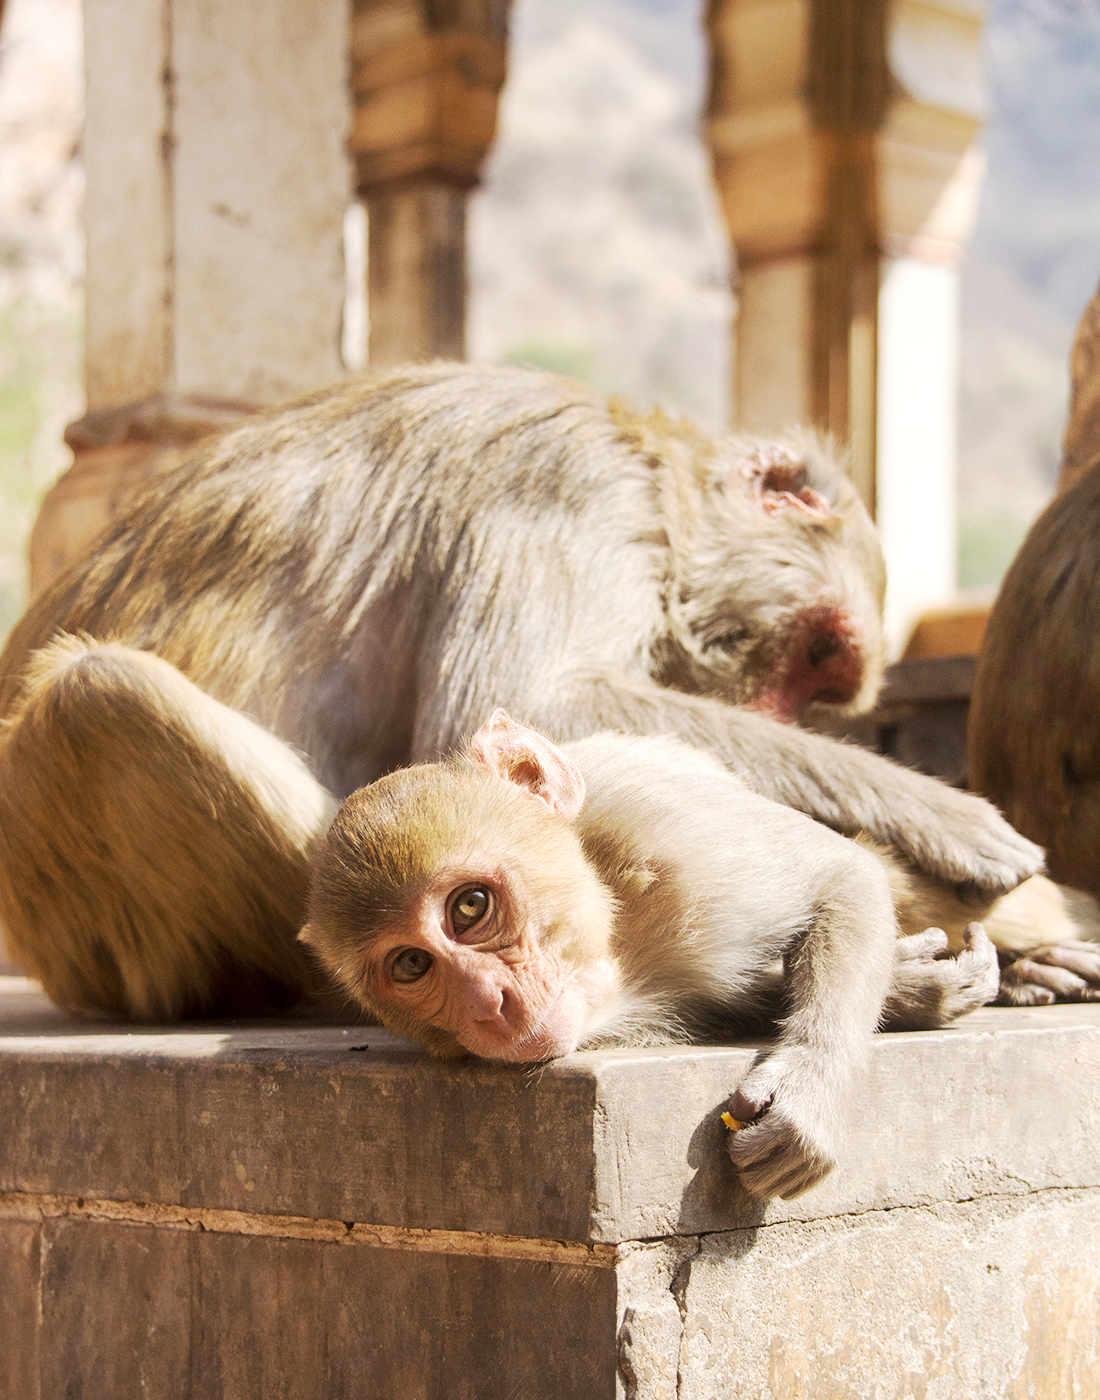 Monkey_Temple_grooming_web2019.jpg